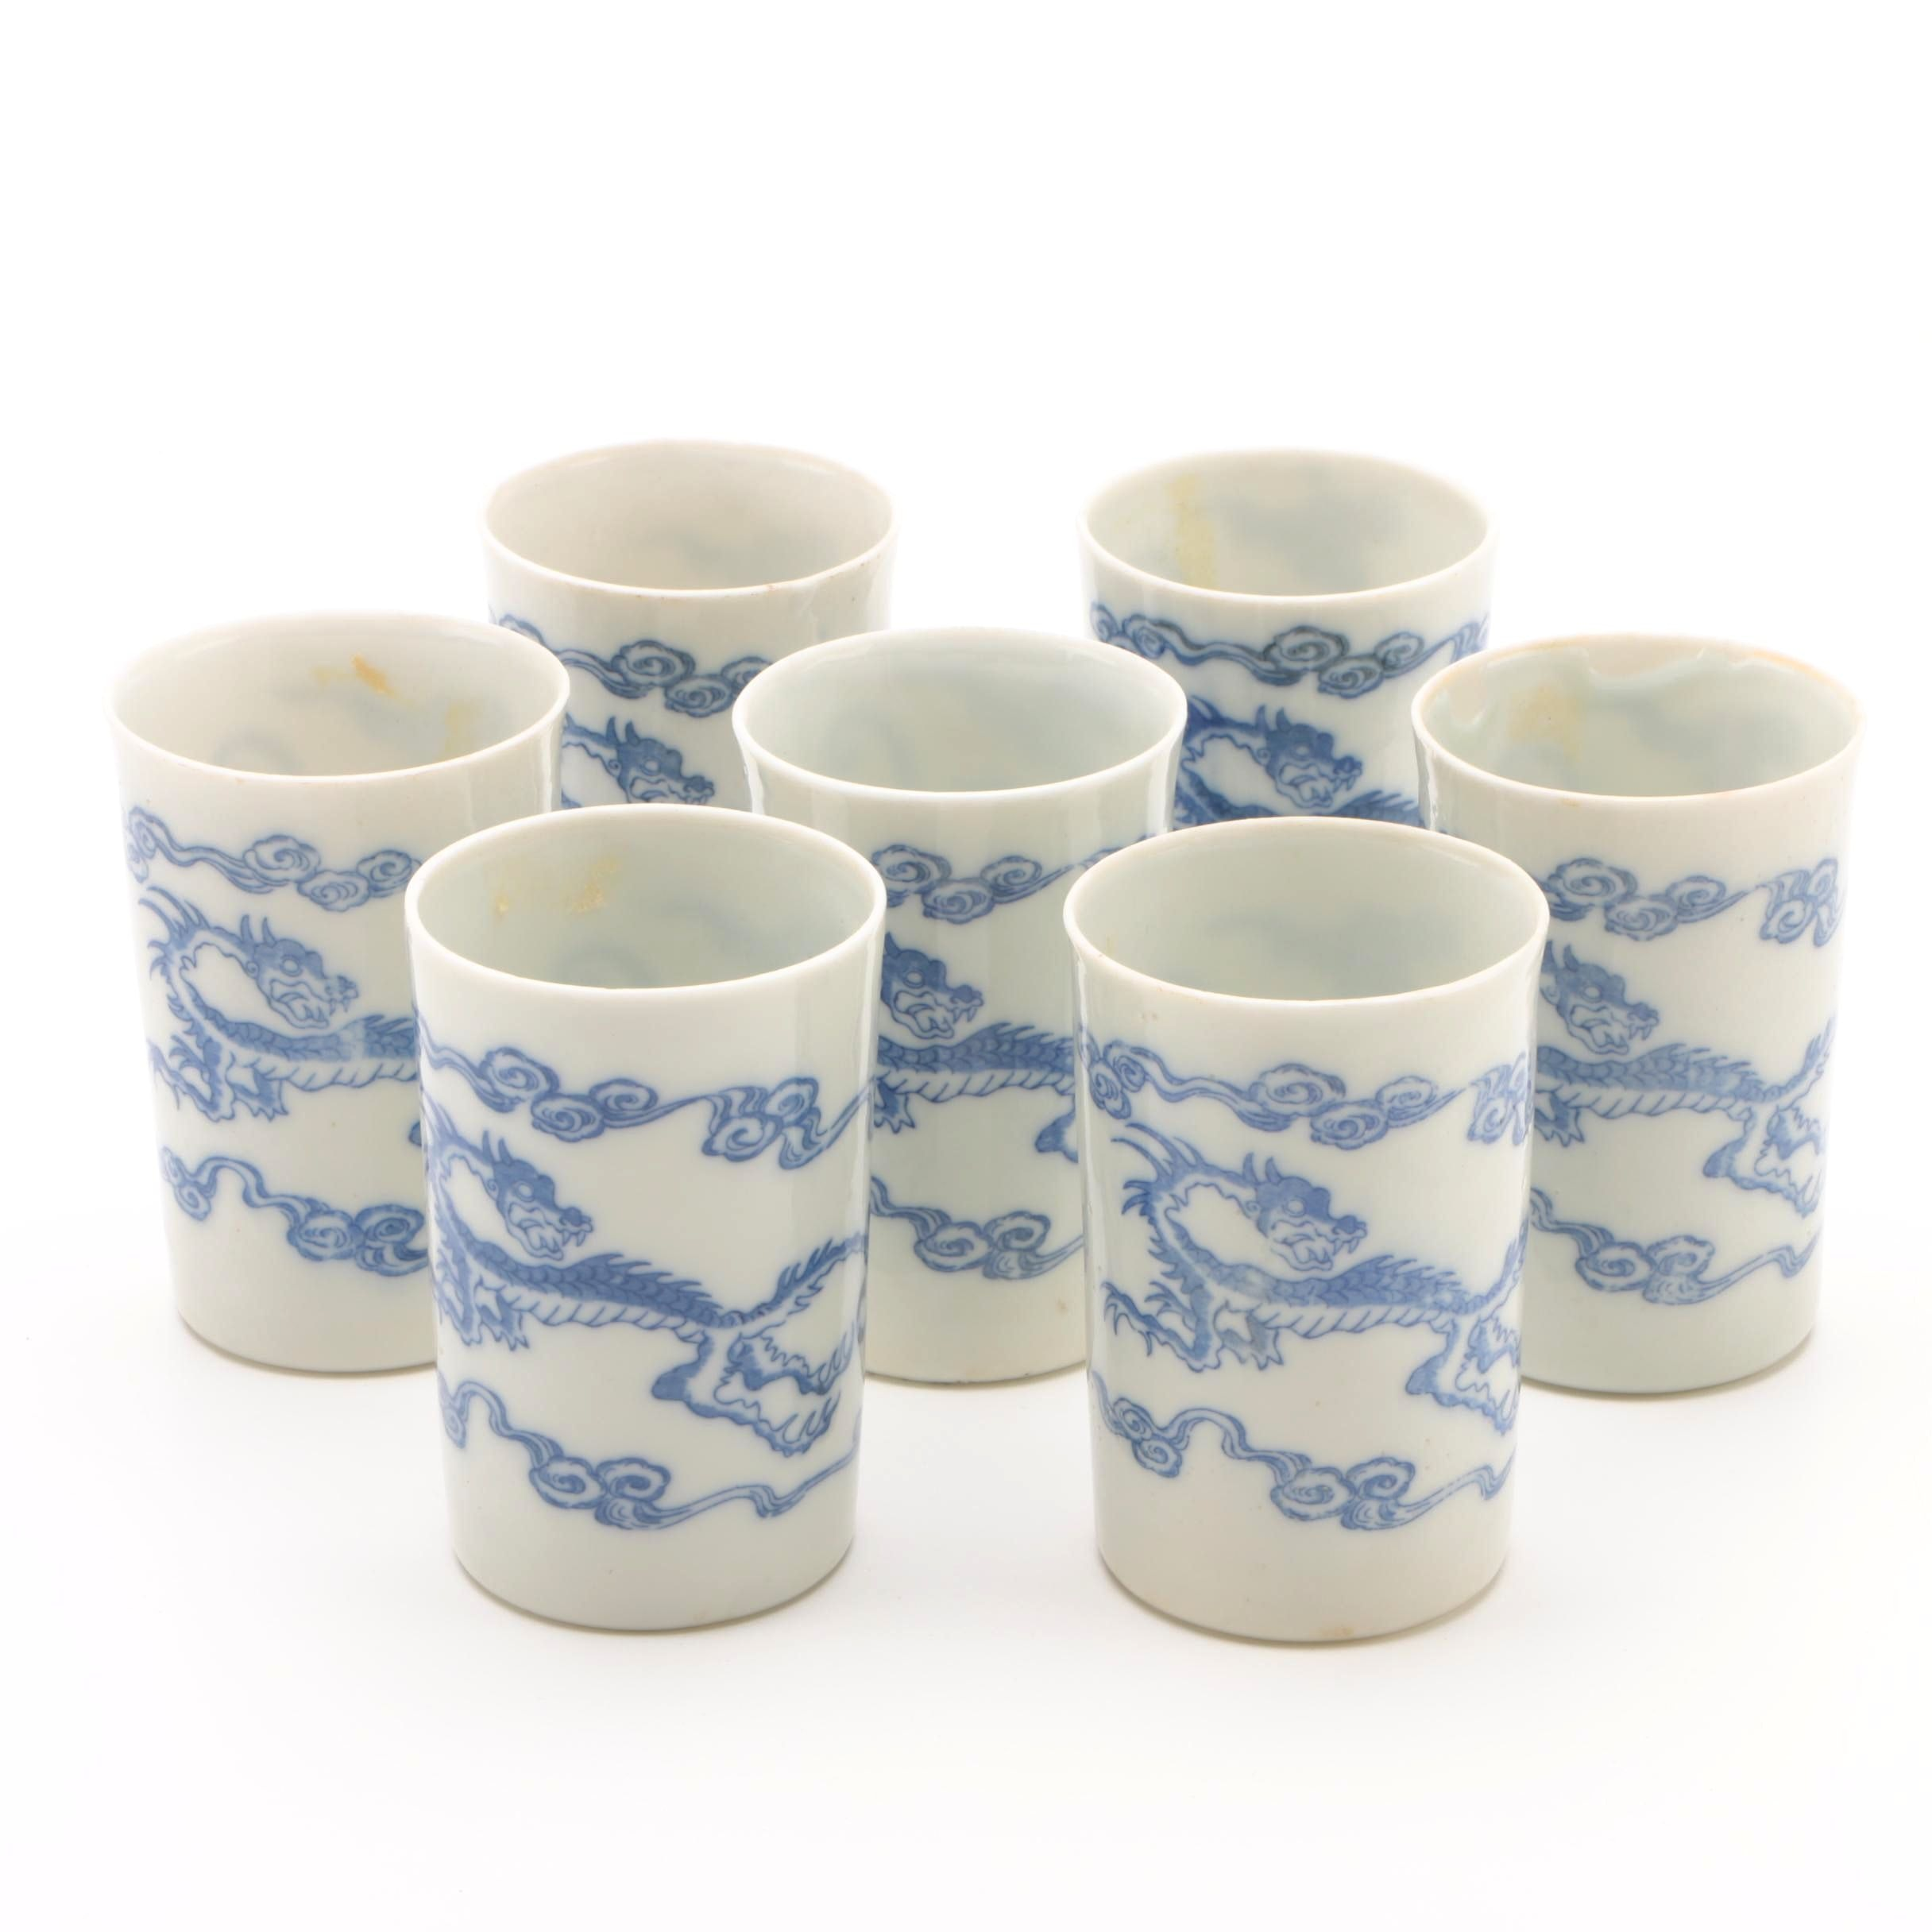 """Chinese Inspired """"Bovox Makes Real Strength"""" Cups"""